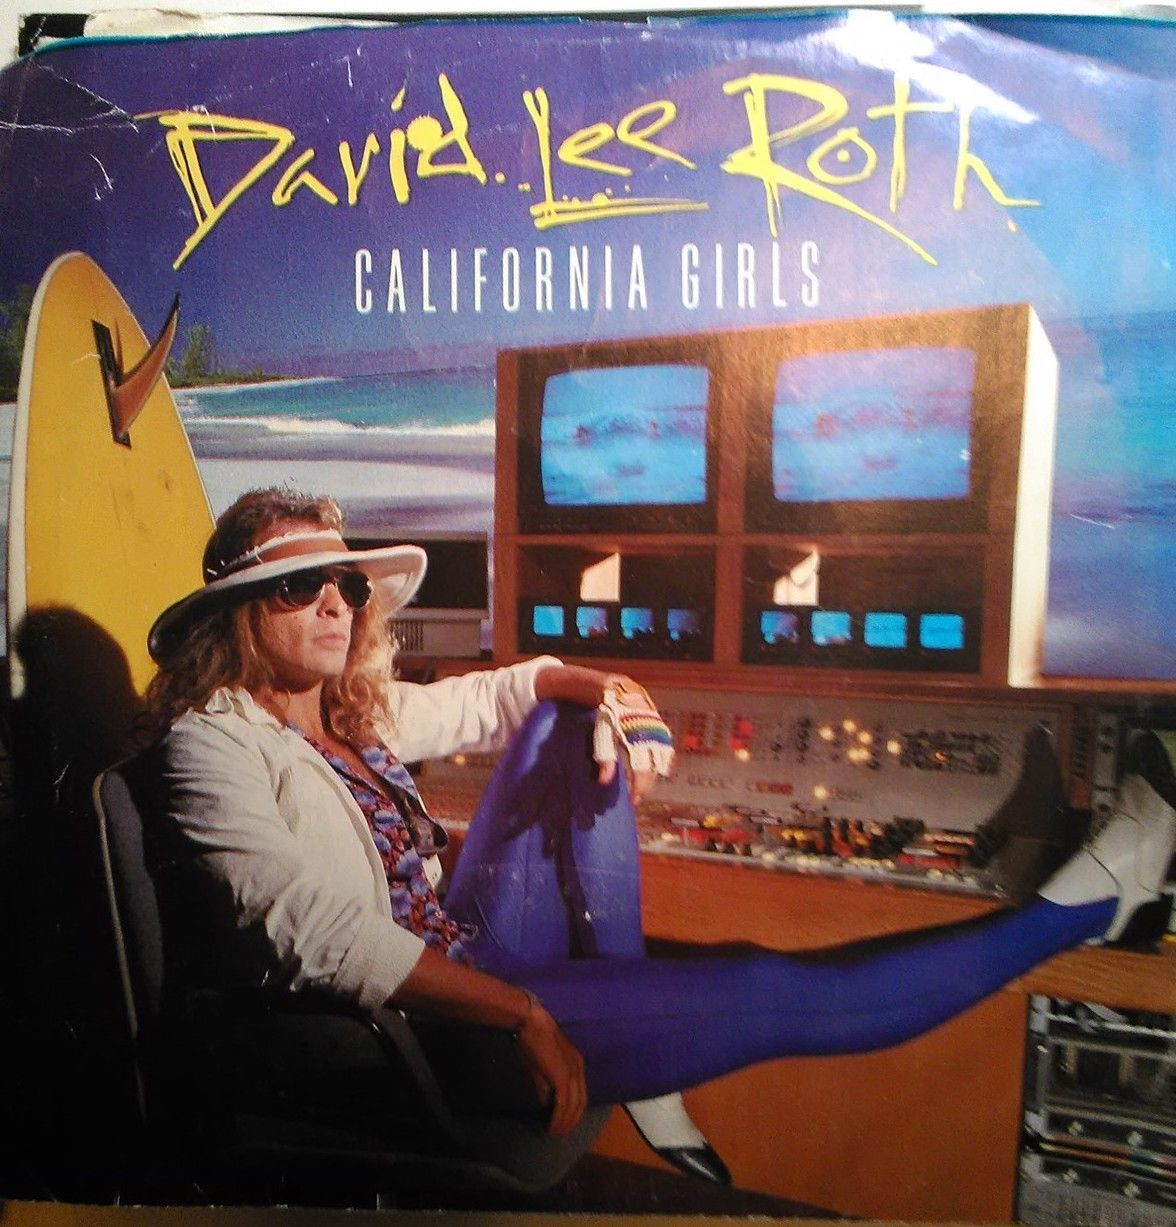 David Lee Roth California Girls Video 1985 Imdb